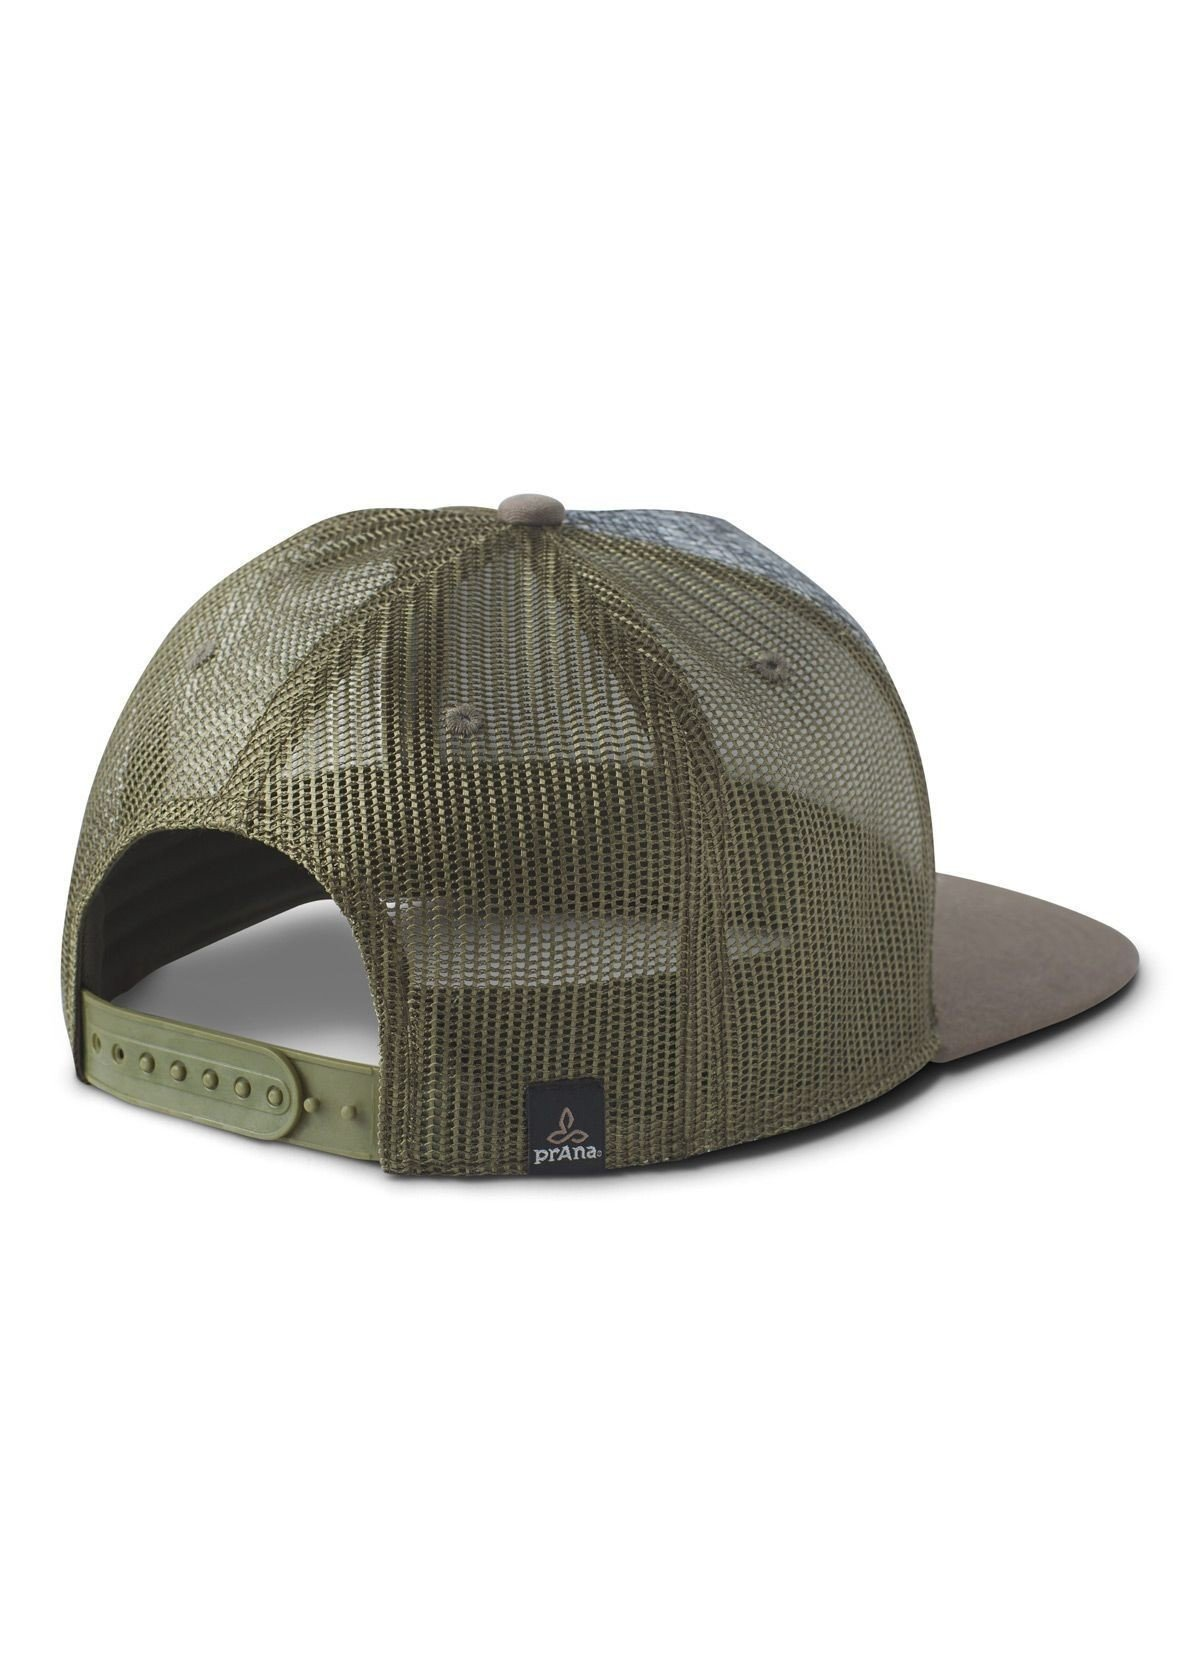 prAna Journeyman Trucker Wise Donkey Hat